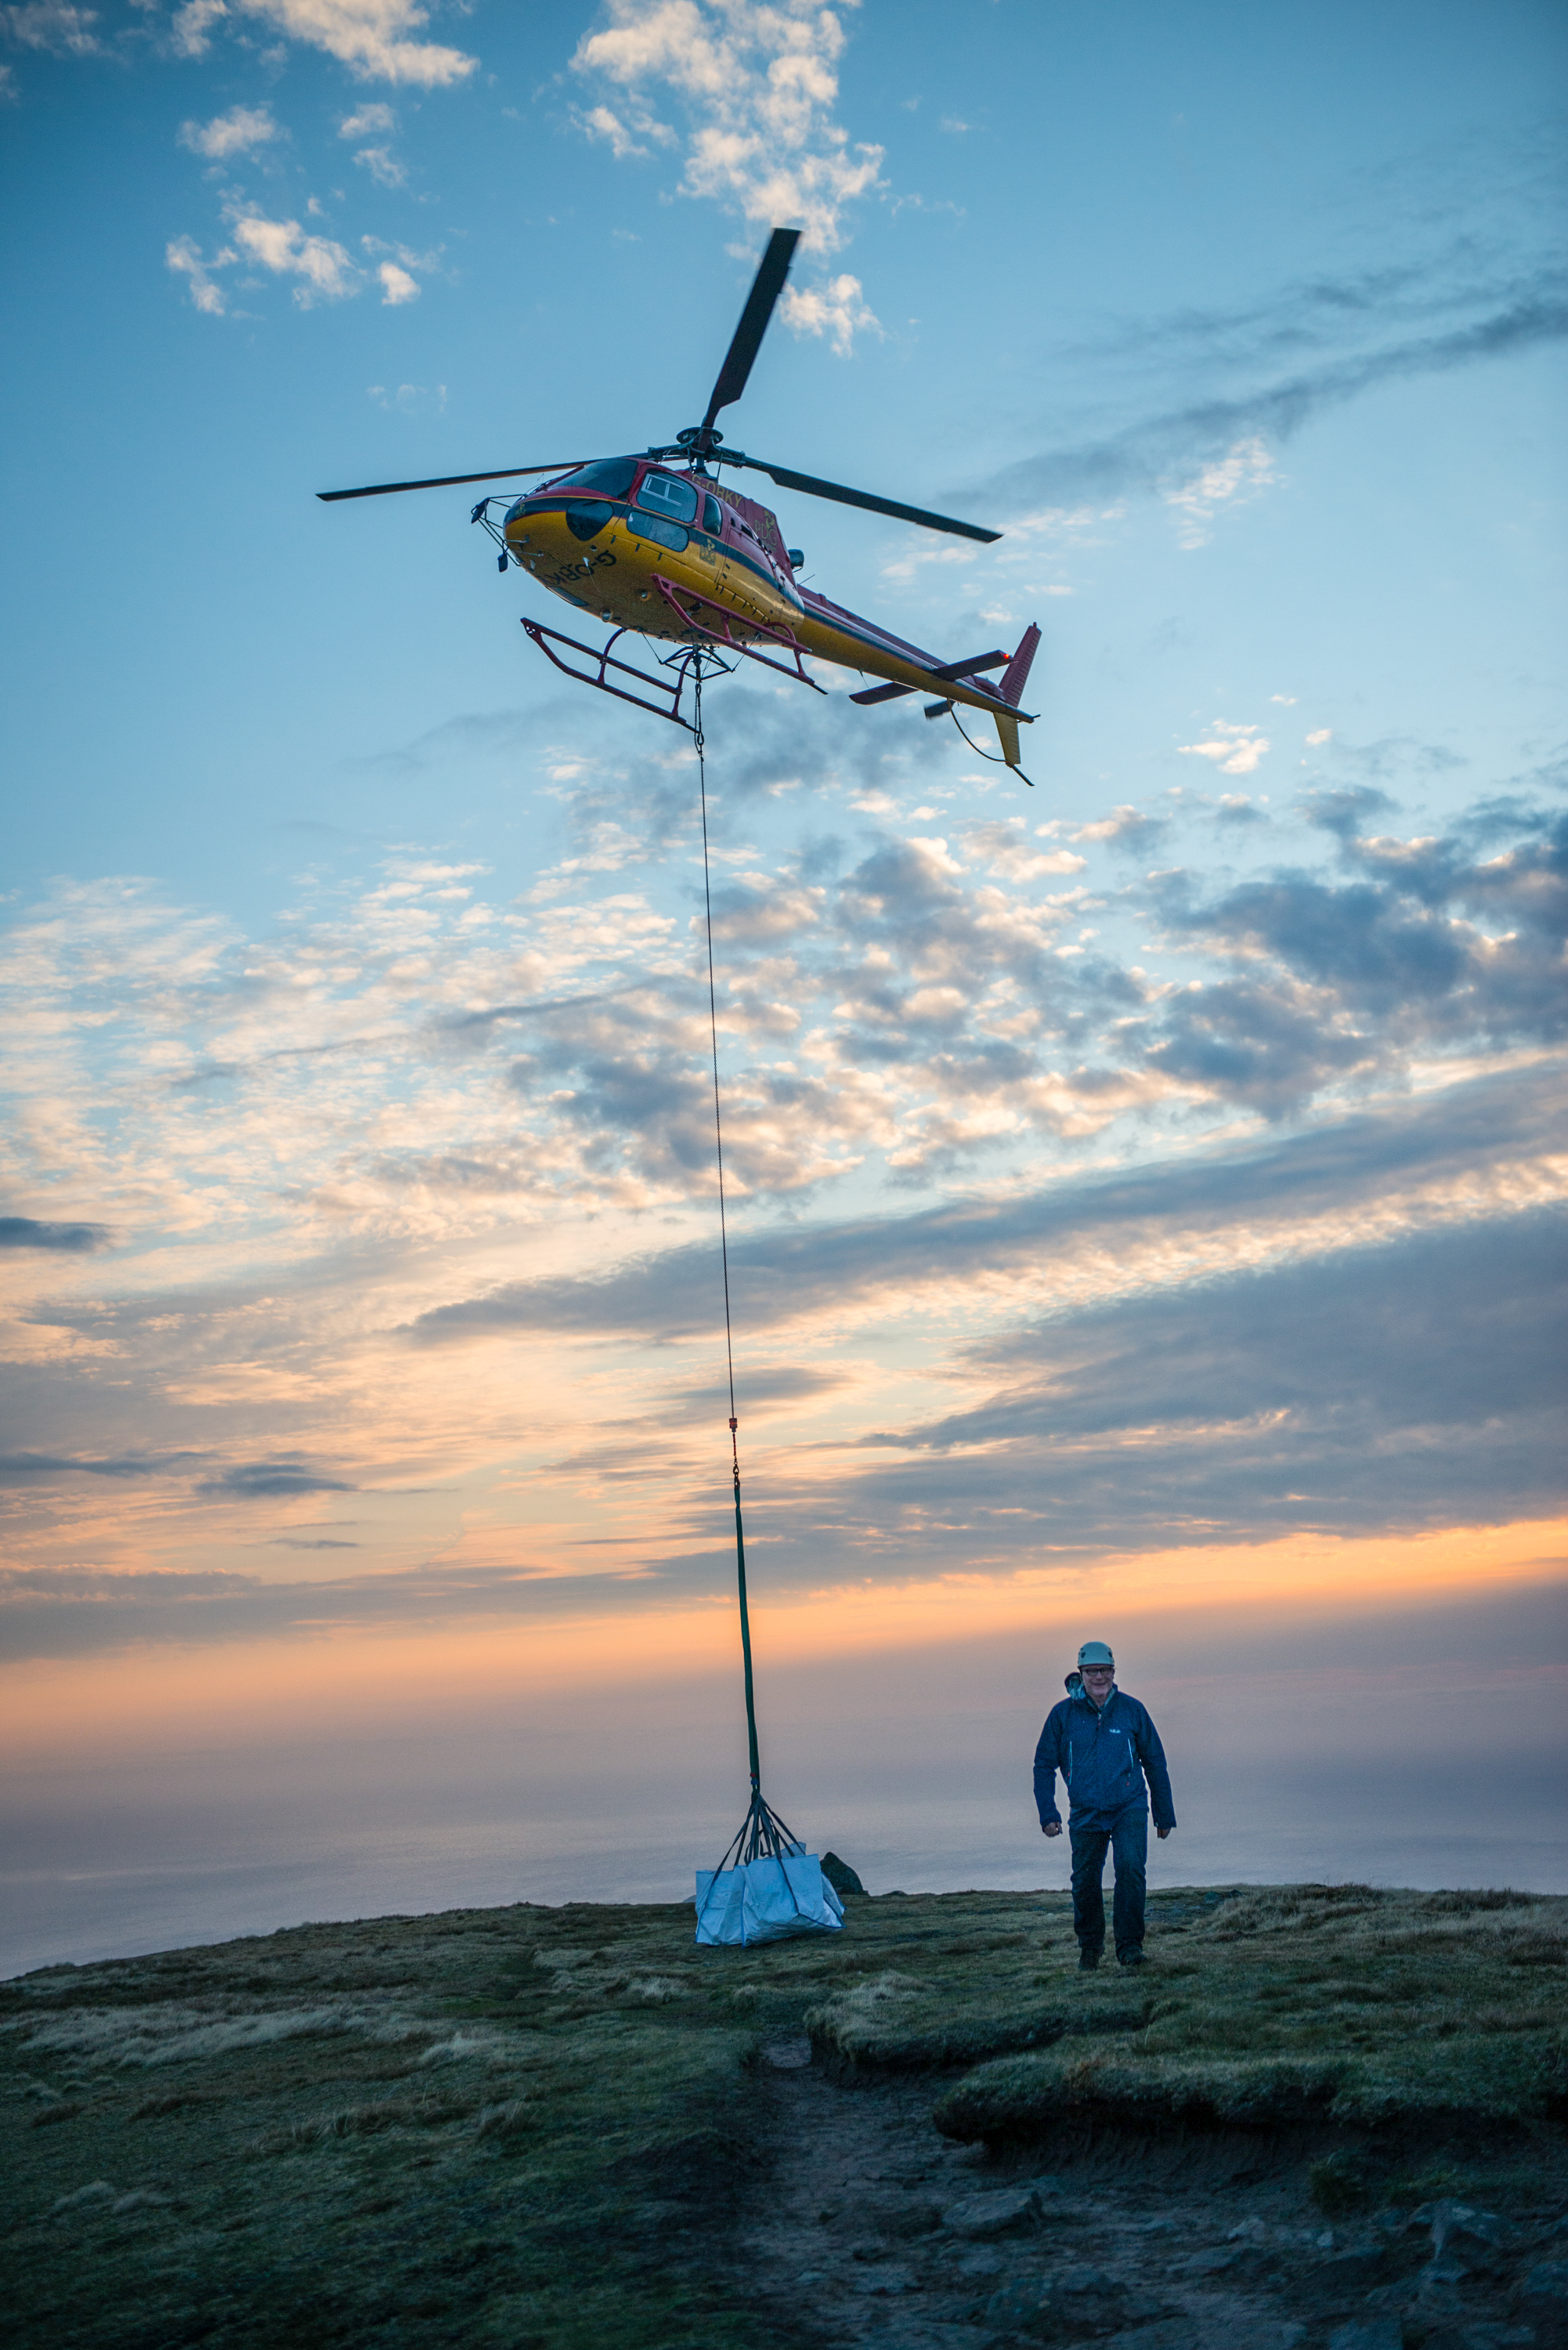 A helicopter lifting grip equipment off the top of Suilven mountain in Sutherland. The entire crew and cast hiked to the summit but a helicopter was used to remove heavy bags back down to the unit base